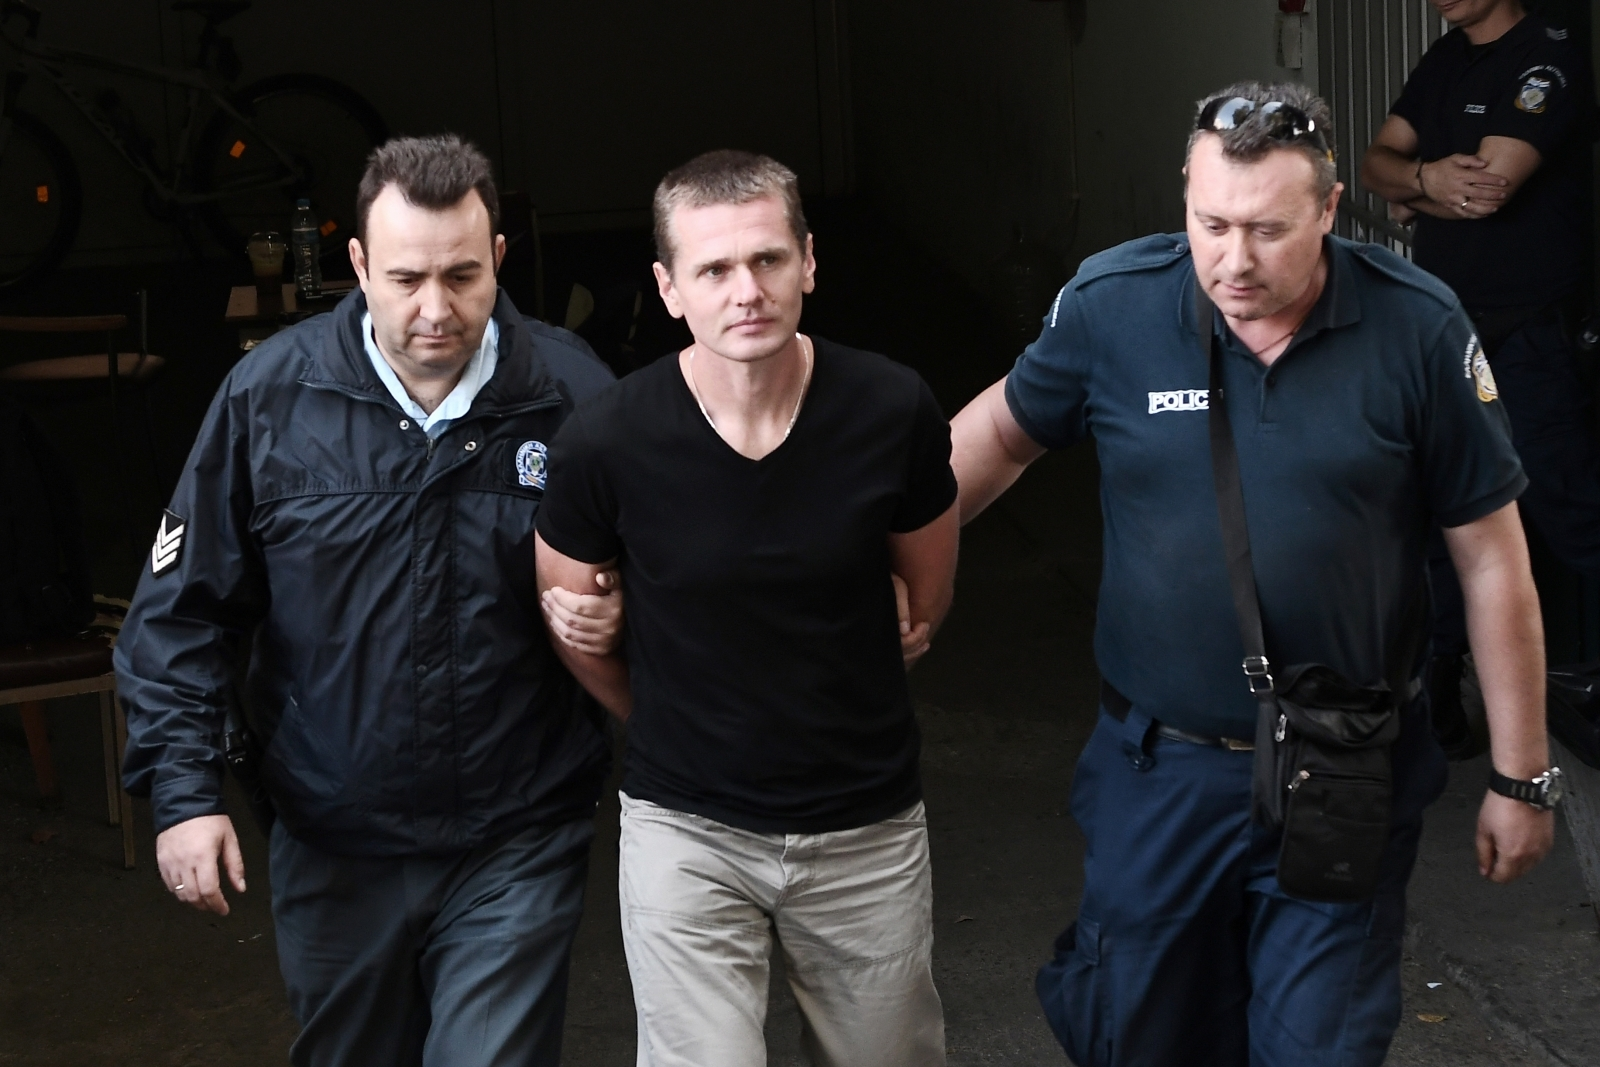 Greek Court Approves US Extradition Of Suspected BTC-e Operator Alexander Vinnik